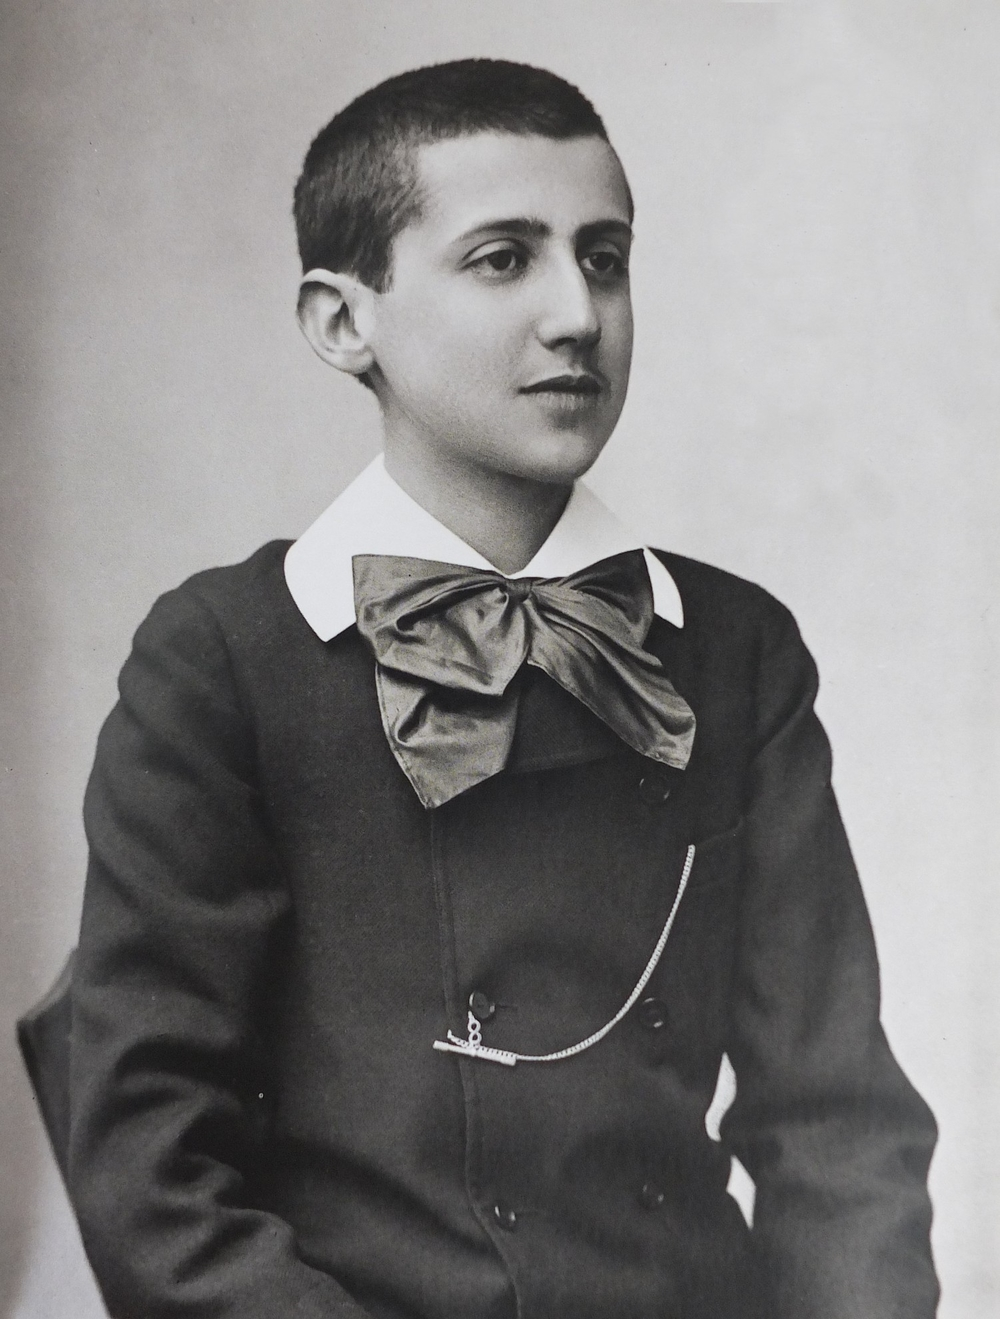 Photograph of Proust as a youth by Paul Nadar, 1887.